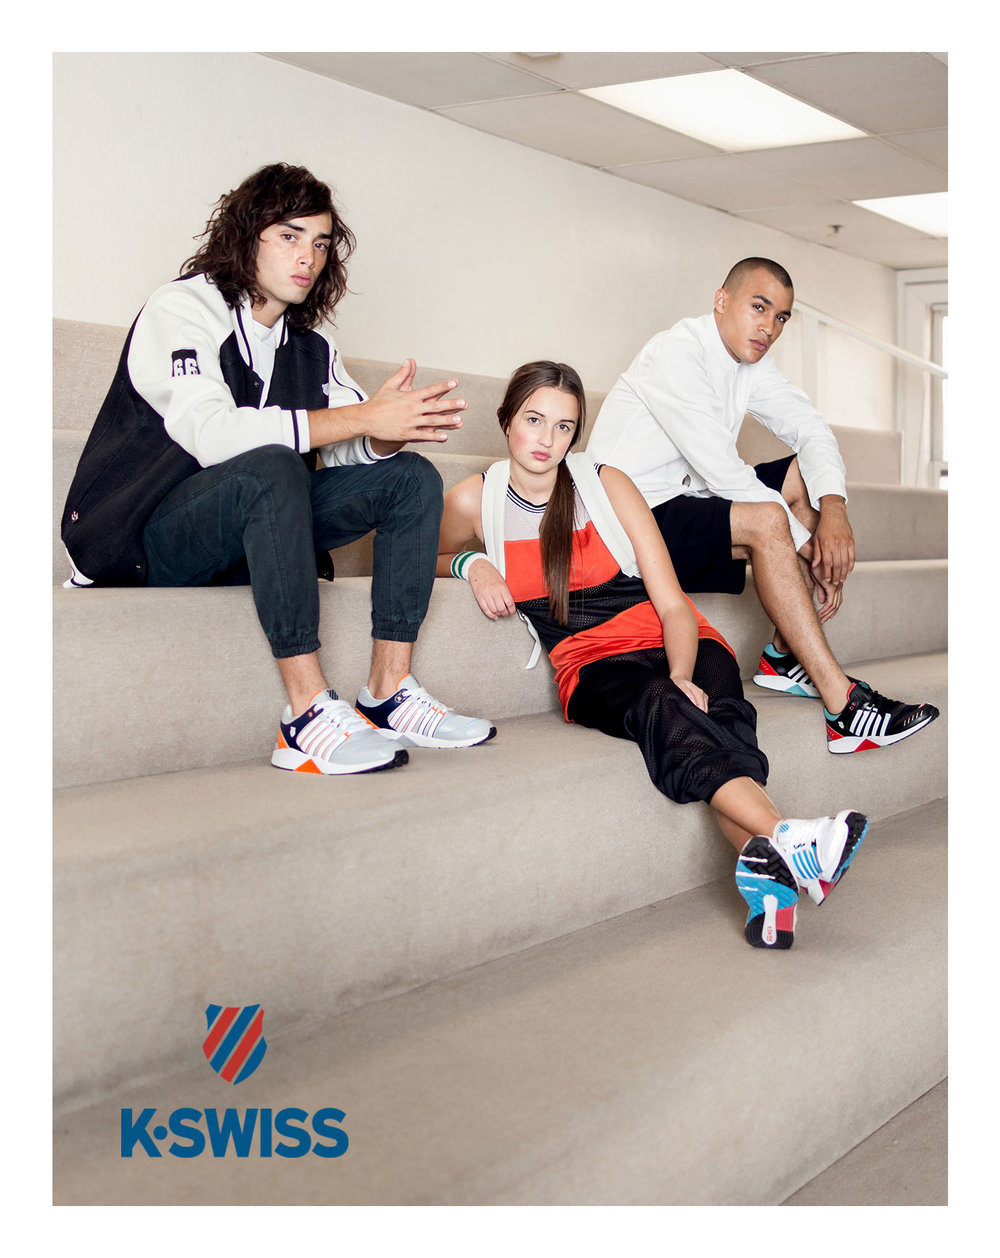 kswiss_group.jpg